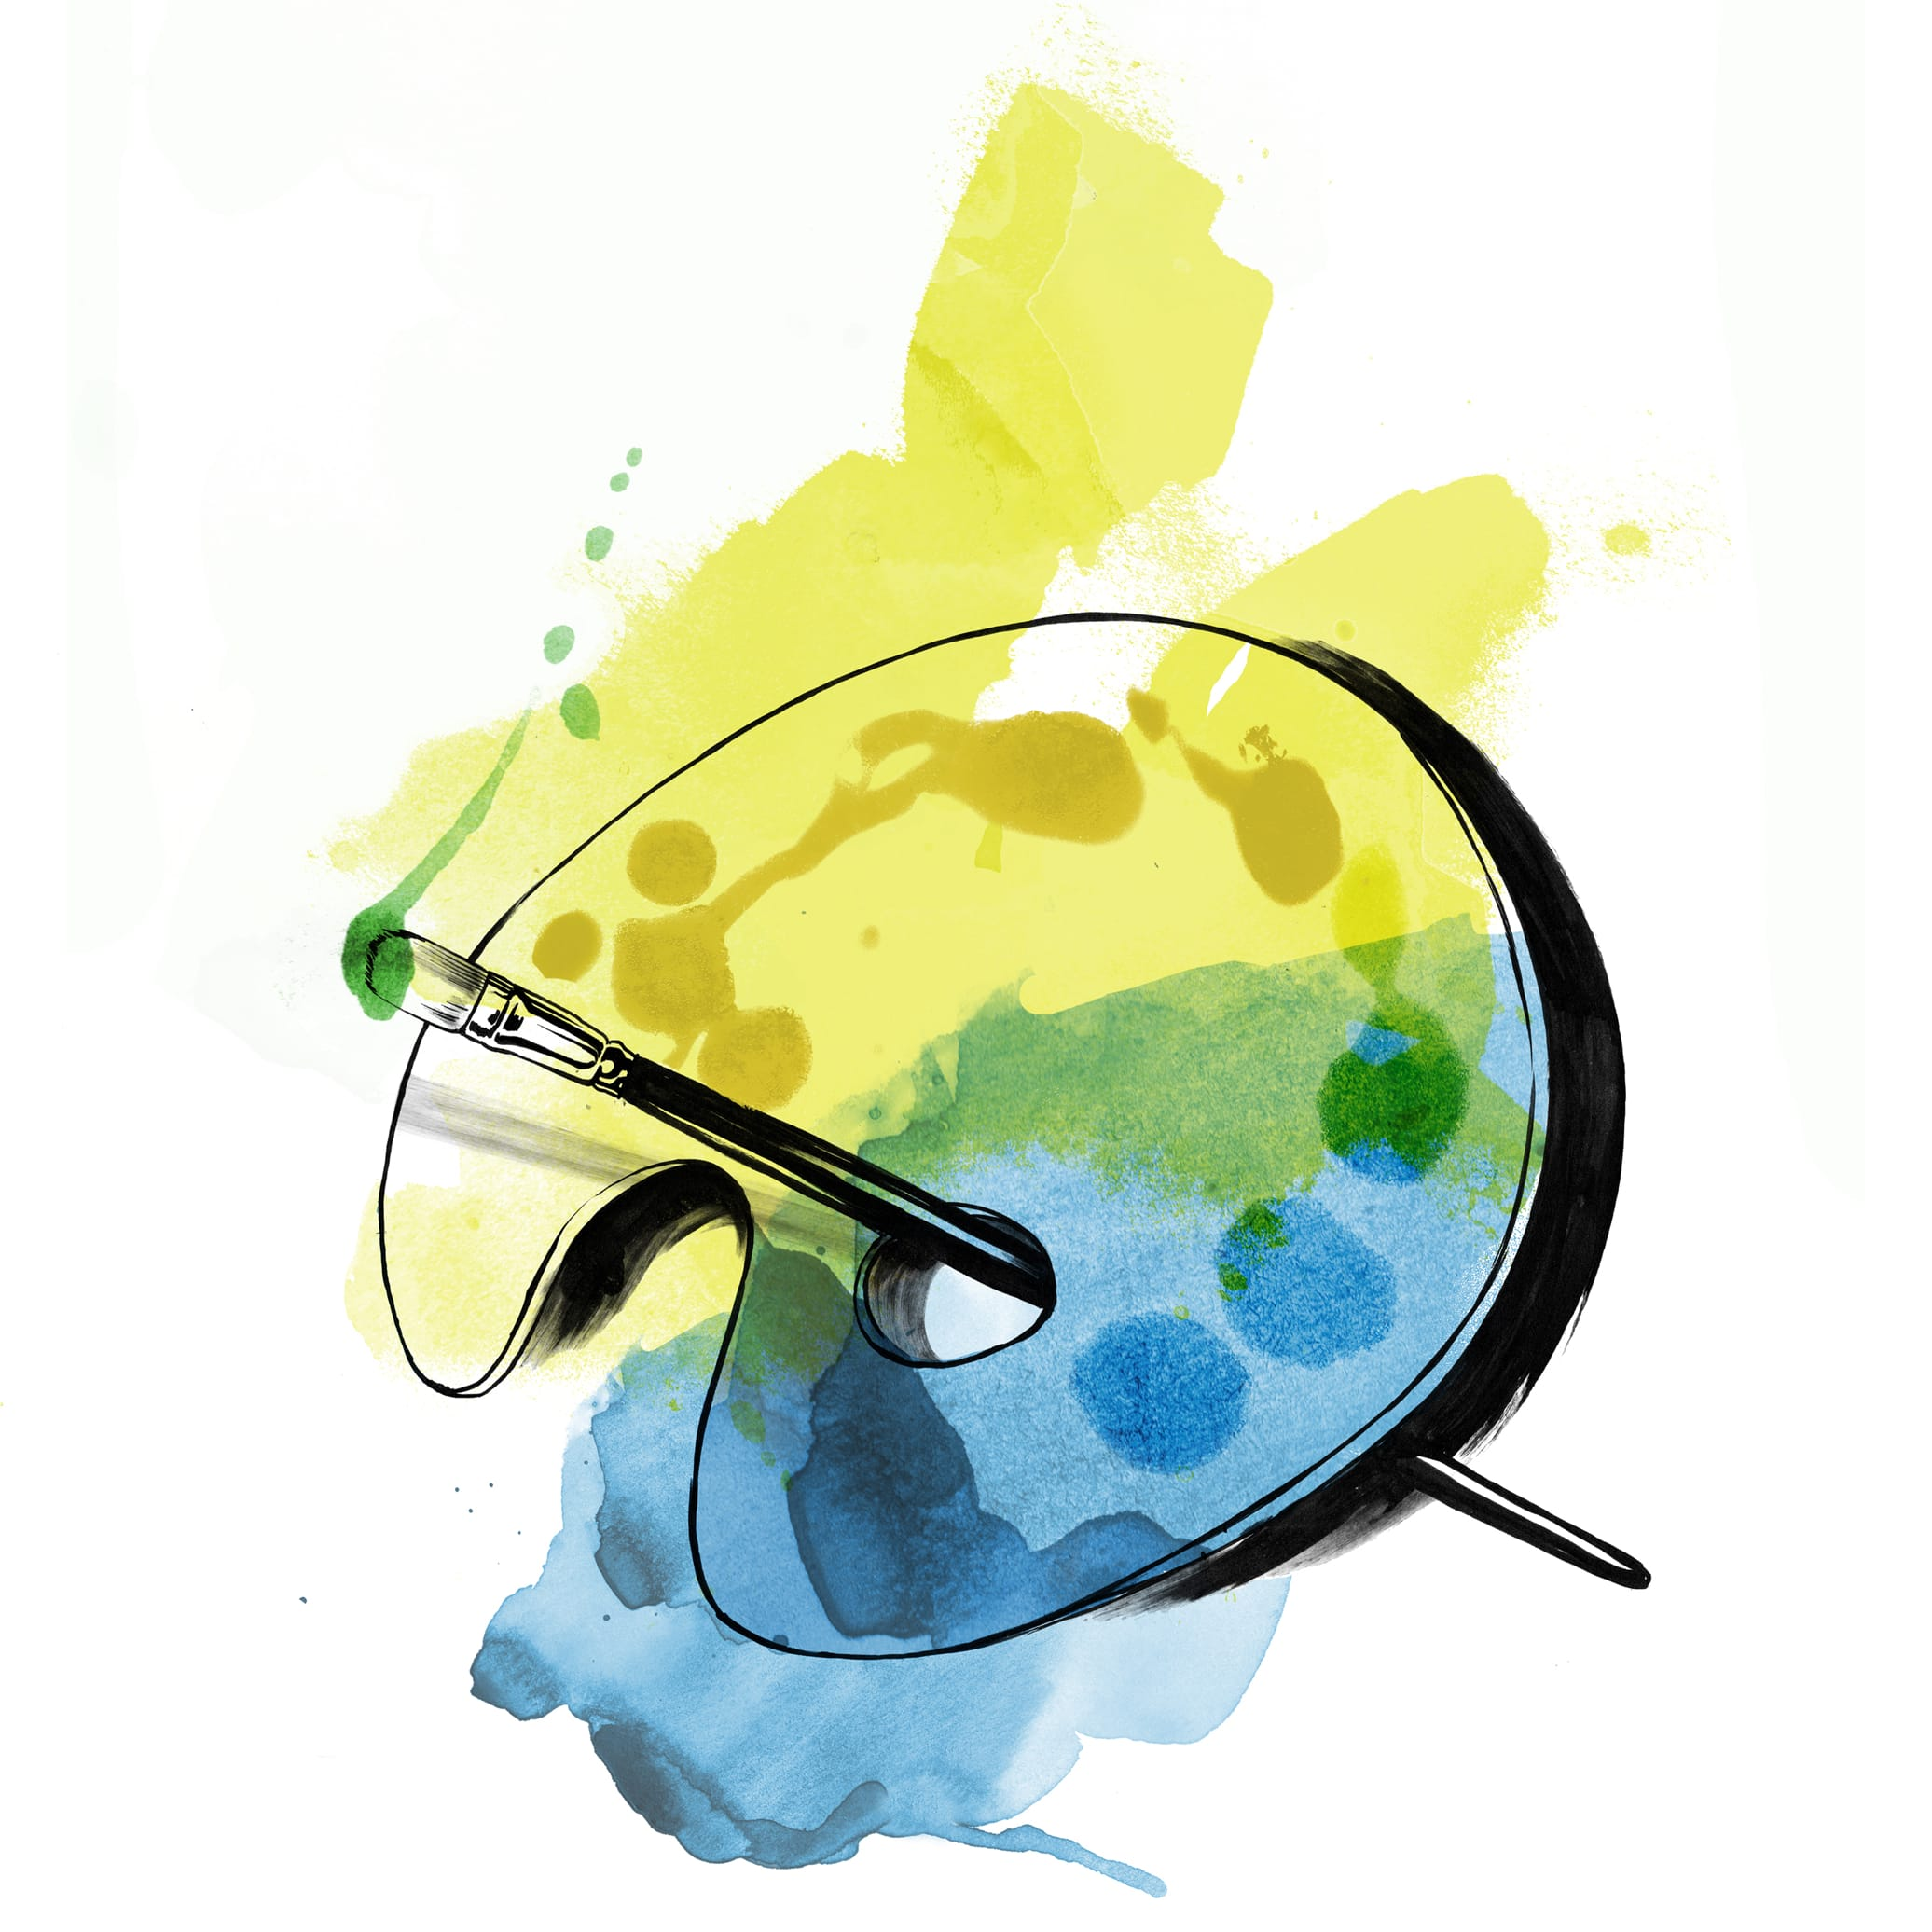 Watercolor illustration of an artist's palette. An actor must paint with all the colors of the wind, but this sketch is done in blue, yellow, and green.